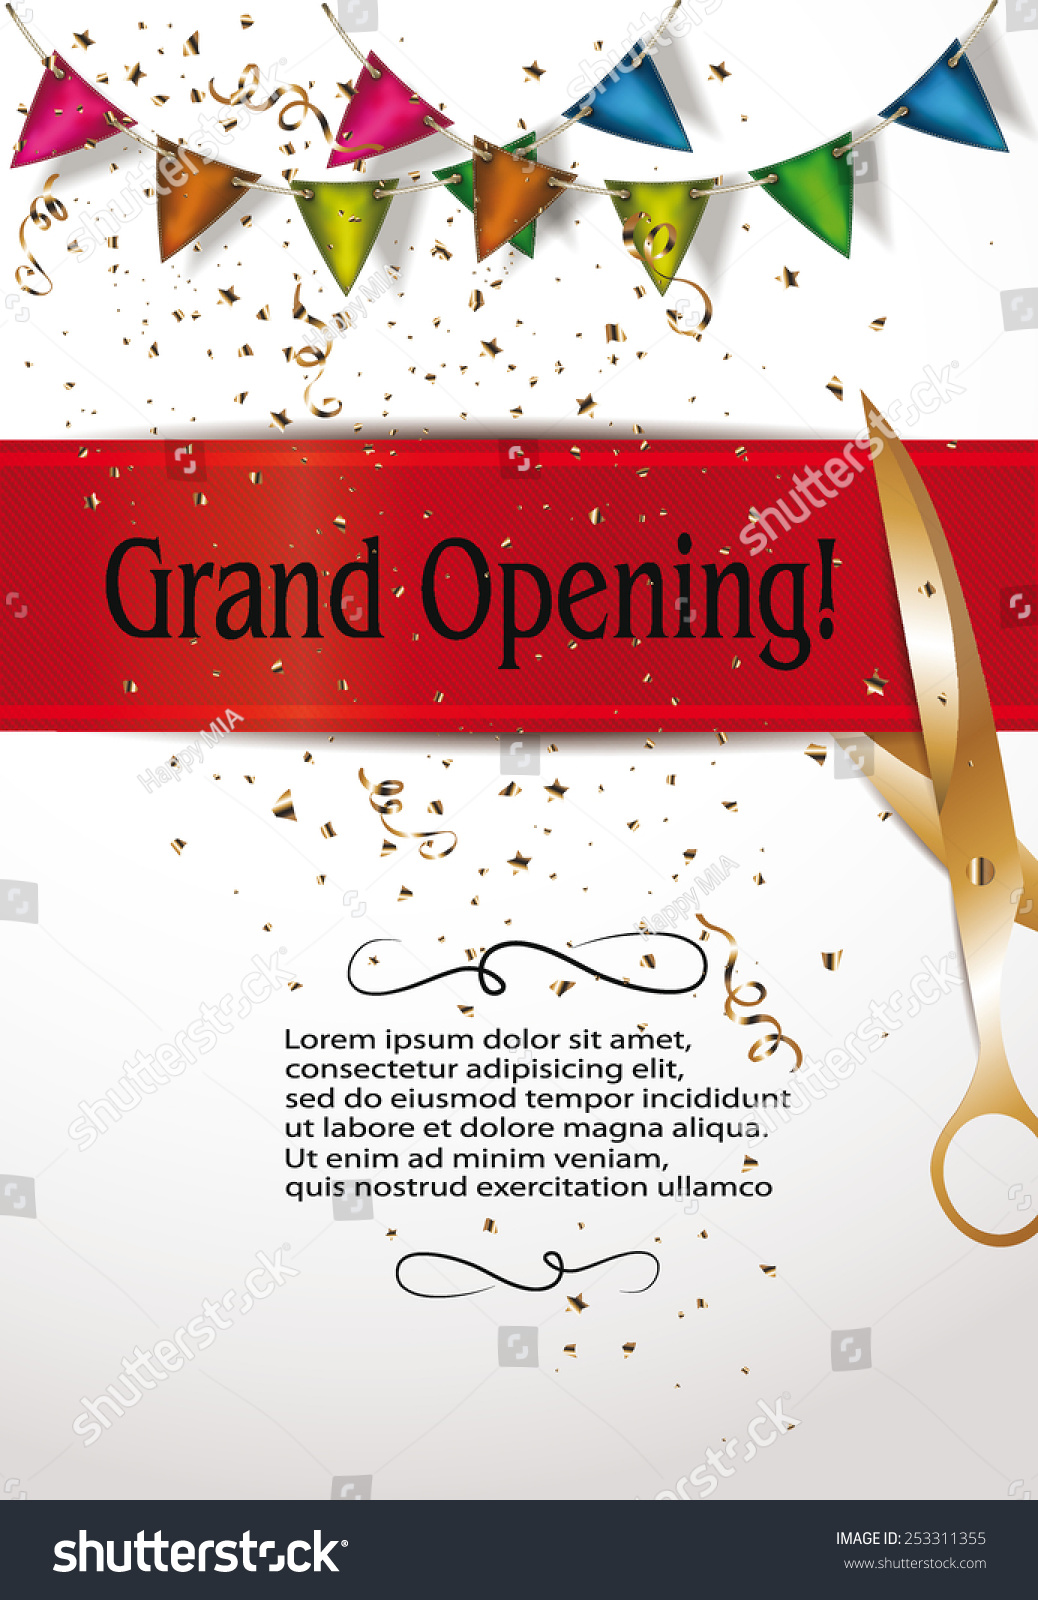 Grand opening invitation cards decorations red stock vector grand opening invitation cards with decorations and red ribbon stopboris Gallery